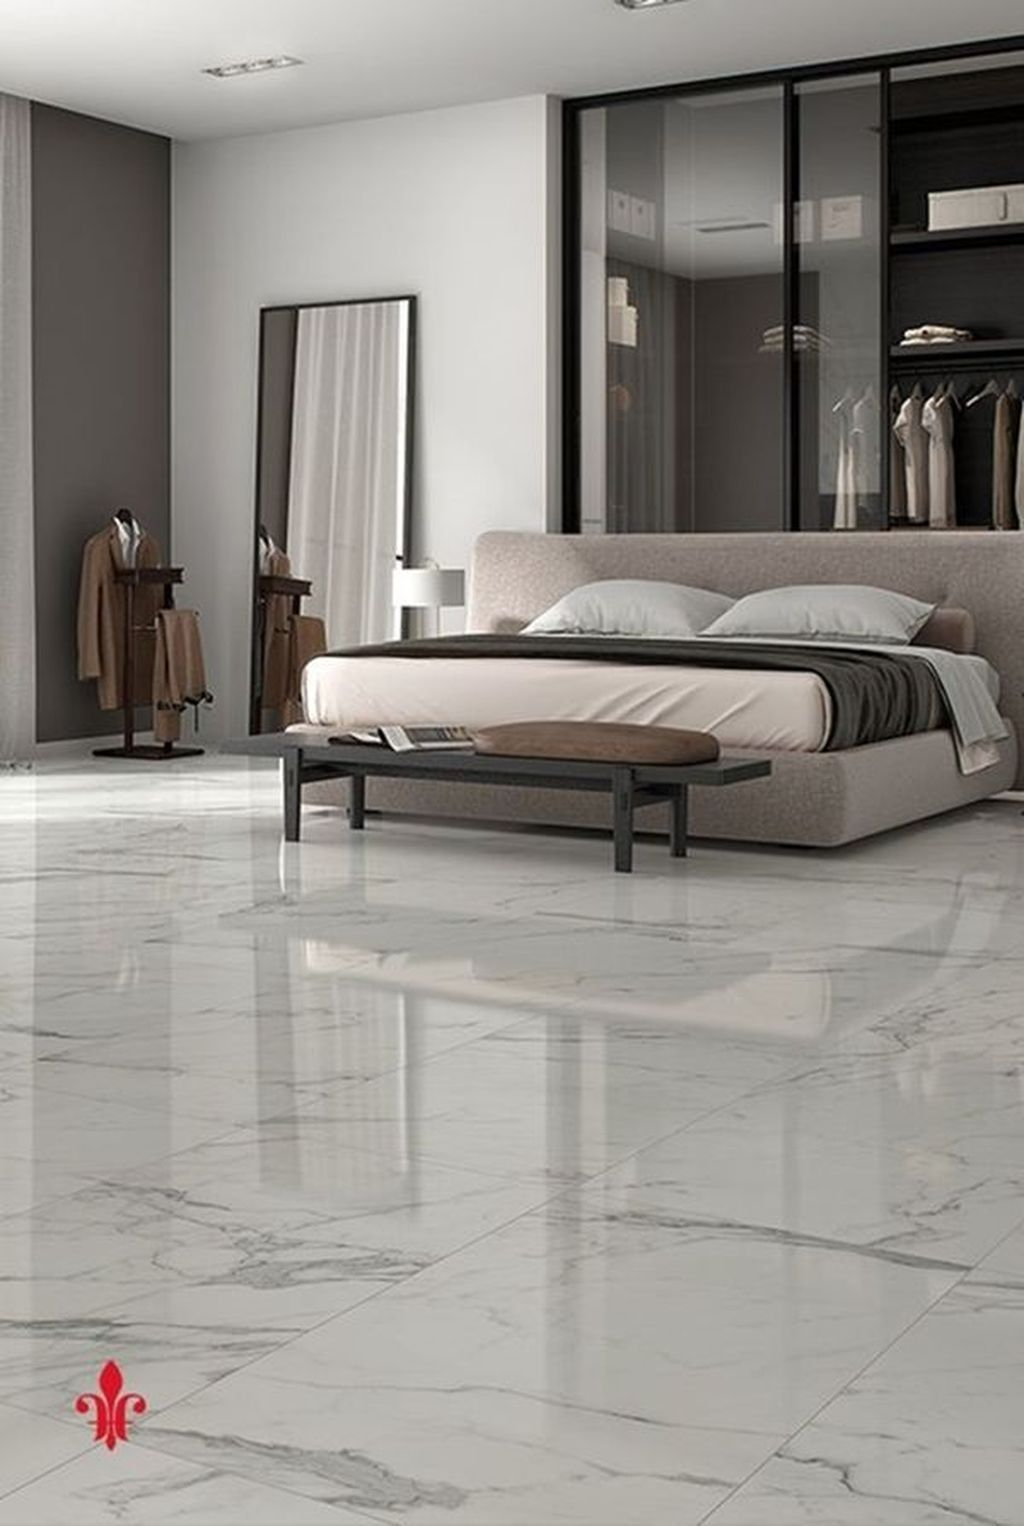 42 Affordable Marble Tiles Design Ideas In The Wooden Floor Tile Bedroom Bedroom Floor Tiles Marble Flooring Design